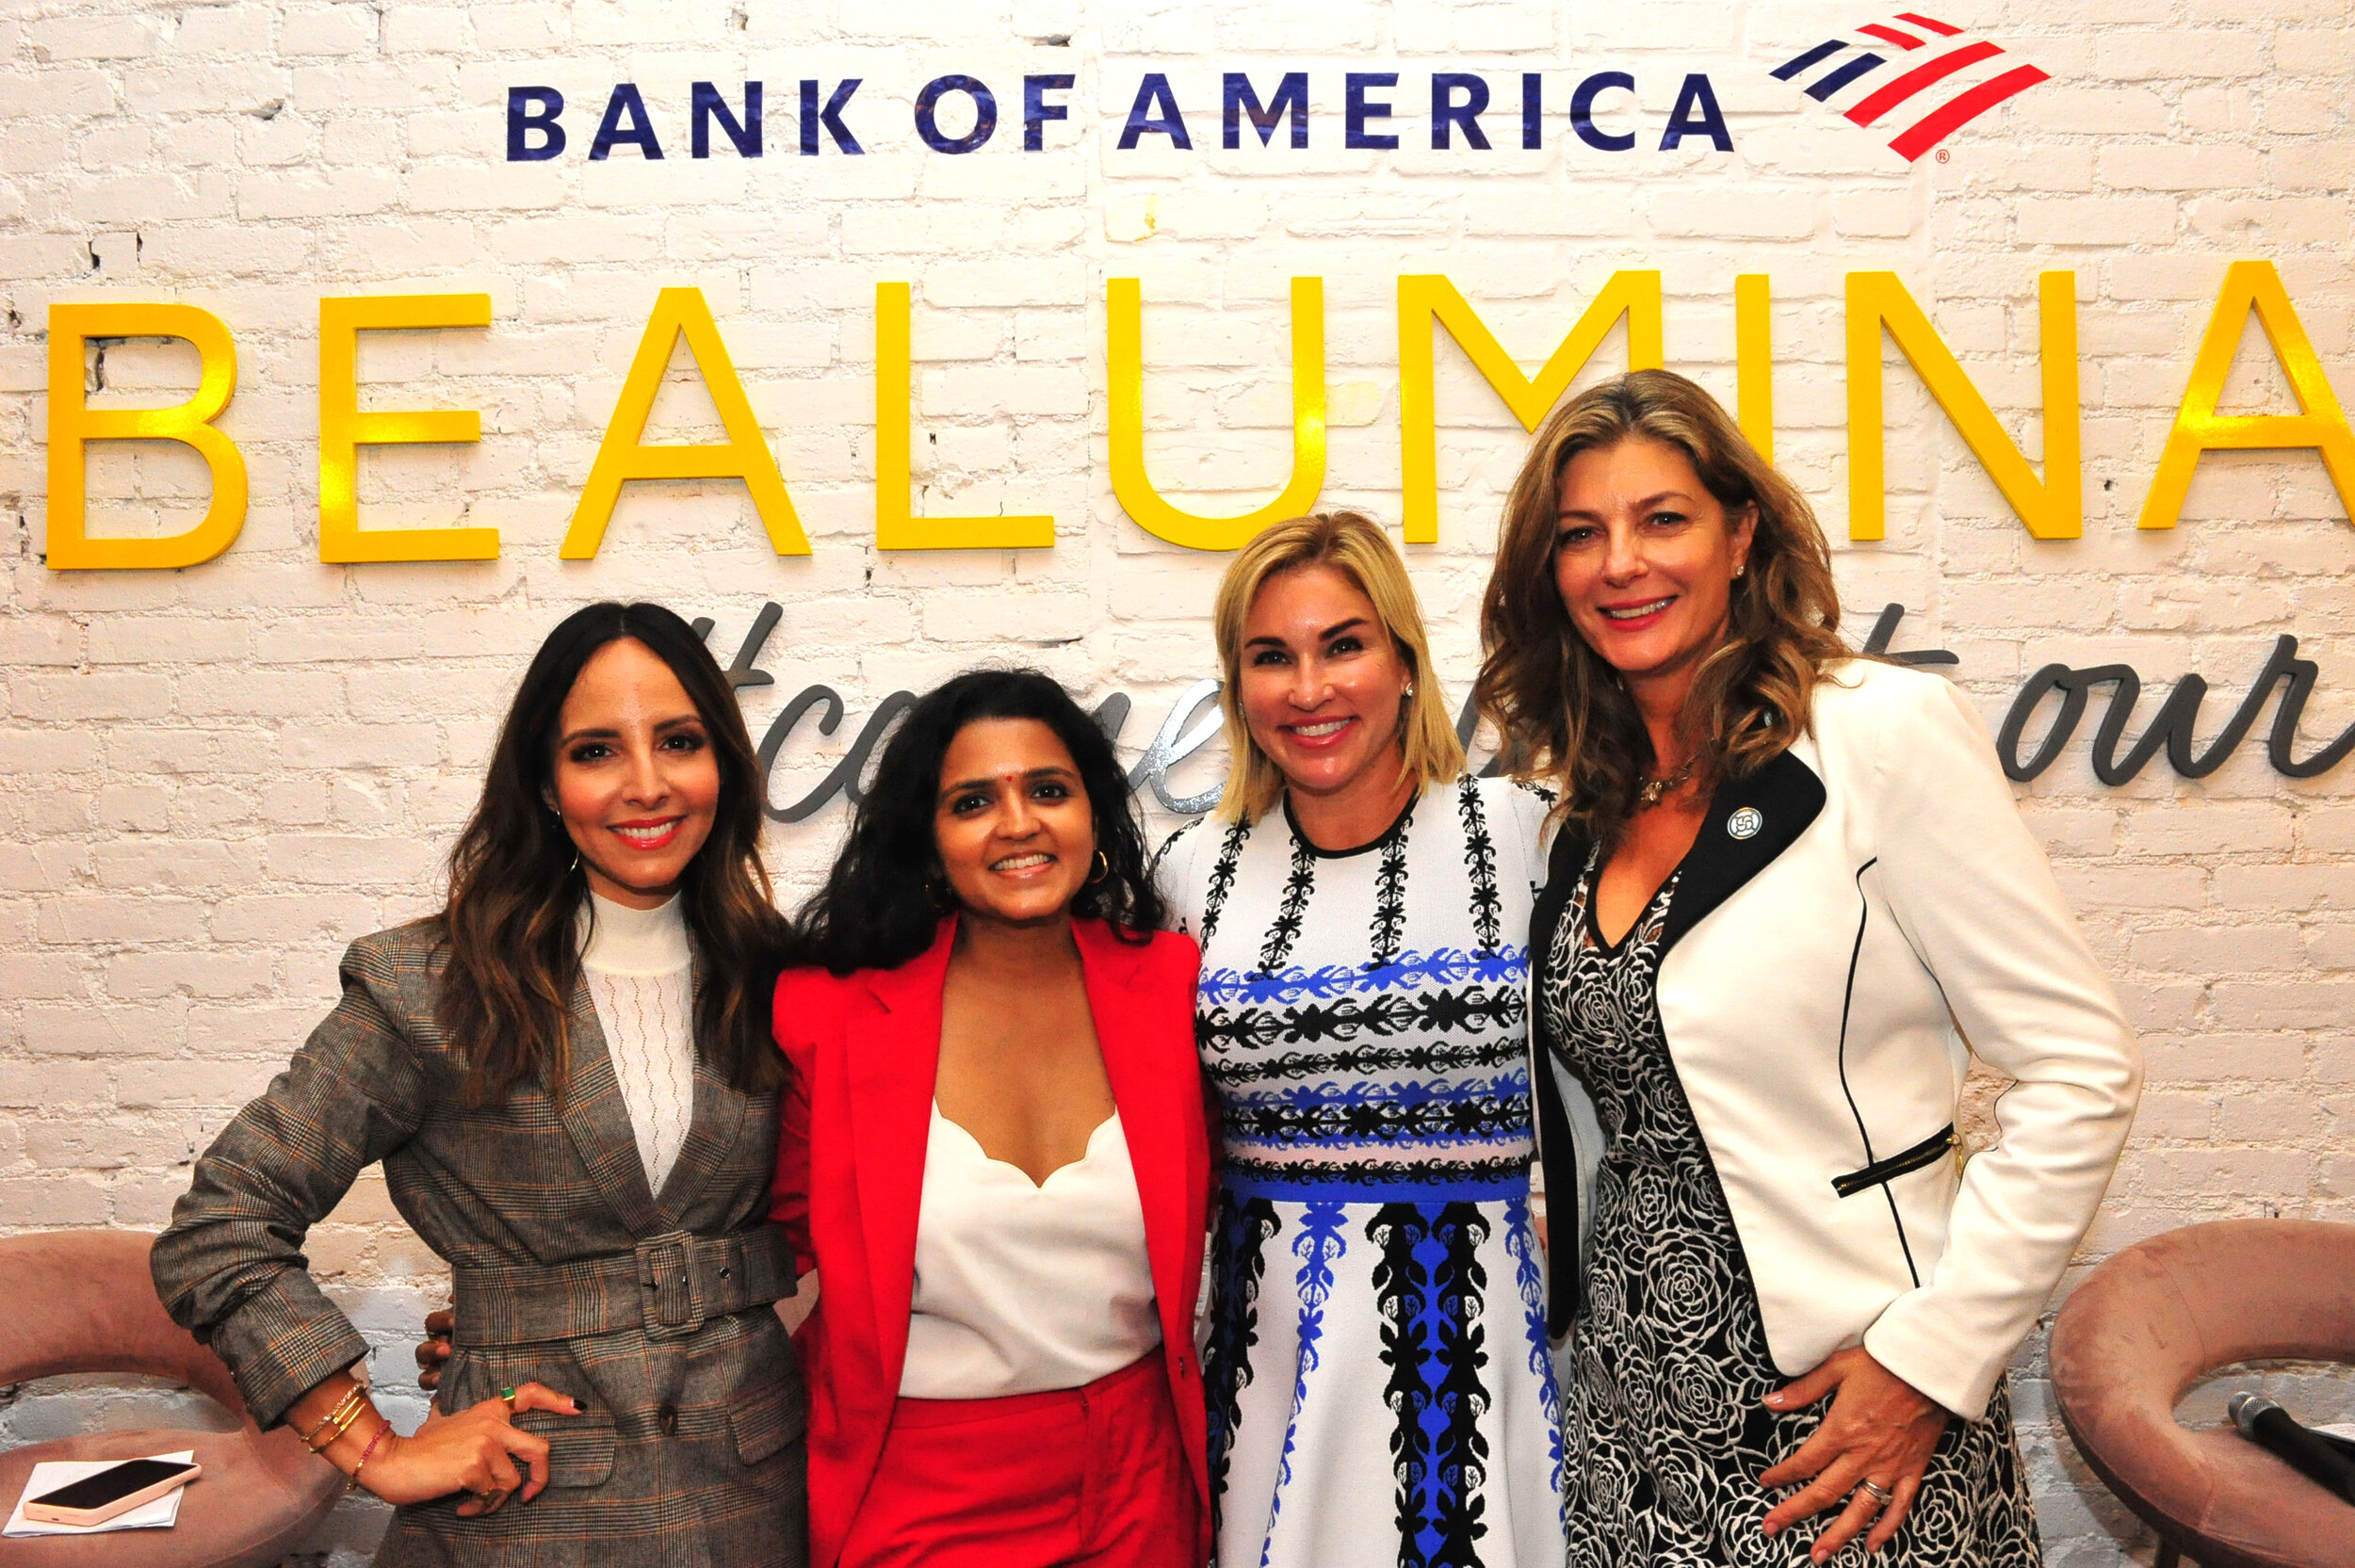 Bank of America Panel  Celebrating Women in Business: Progress Made and the Path Ahead  Lilliana Vazquez Style Expert & Correspondent NBC's Today and Access Hollywood  Sharon Miller Head of Small Business Bank of America  Elizabeth Foster President, NAWBO NYC Founder, Maison Visionnaire